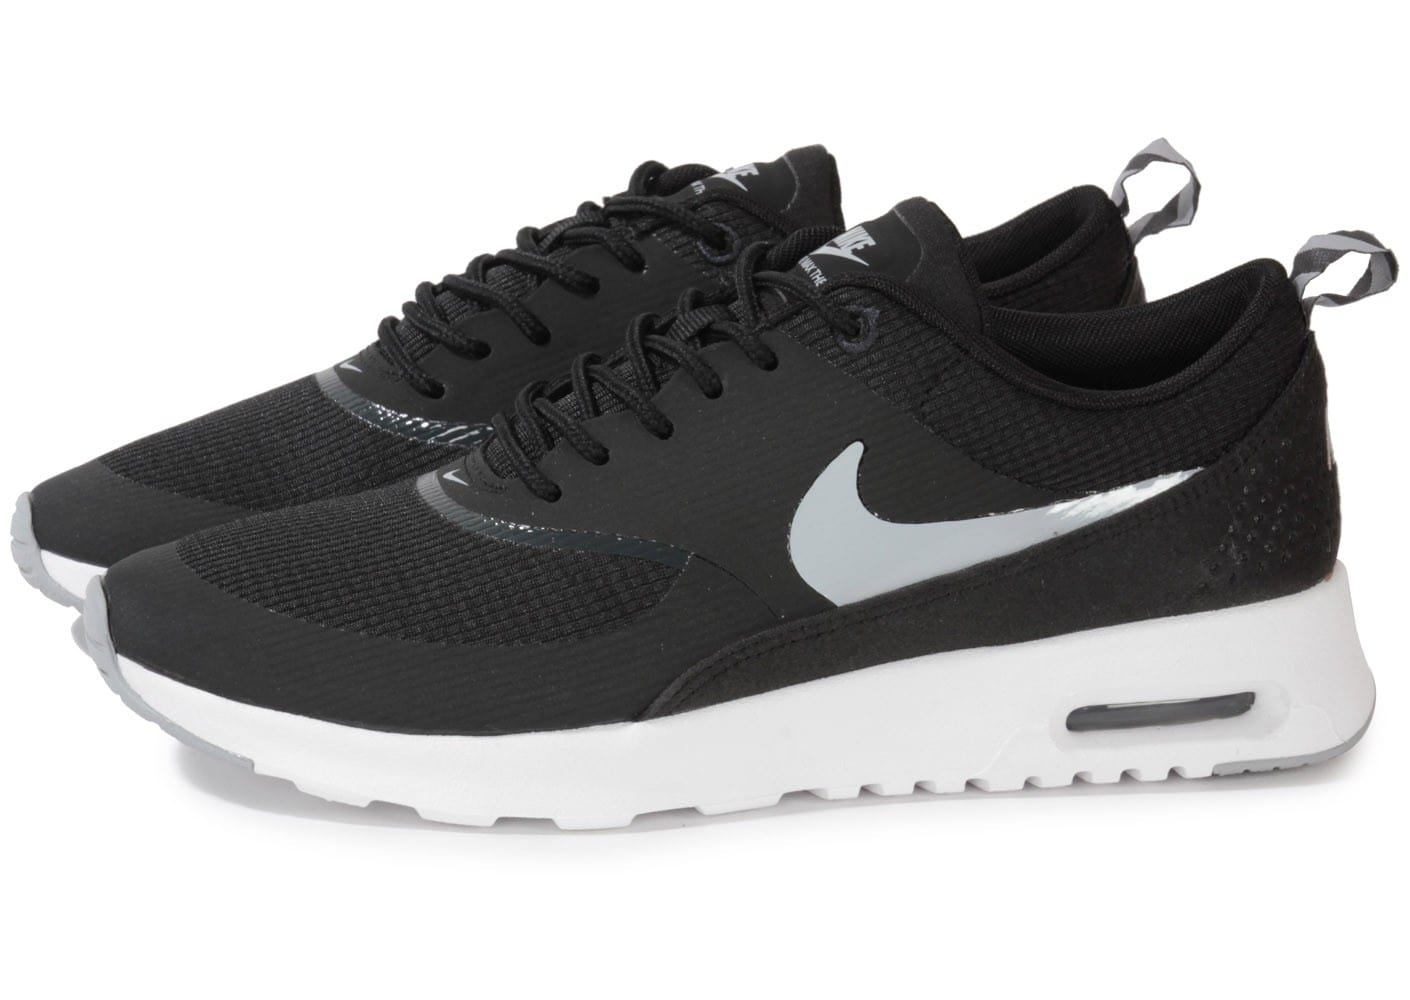 Nike Air Max Thea Noire Blanche Chaussures Baskets femme